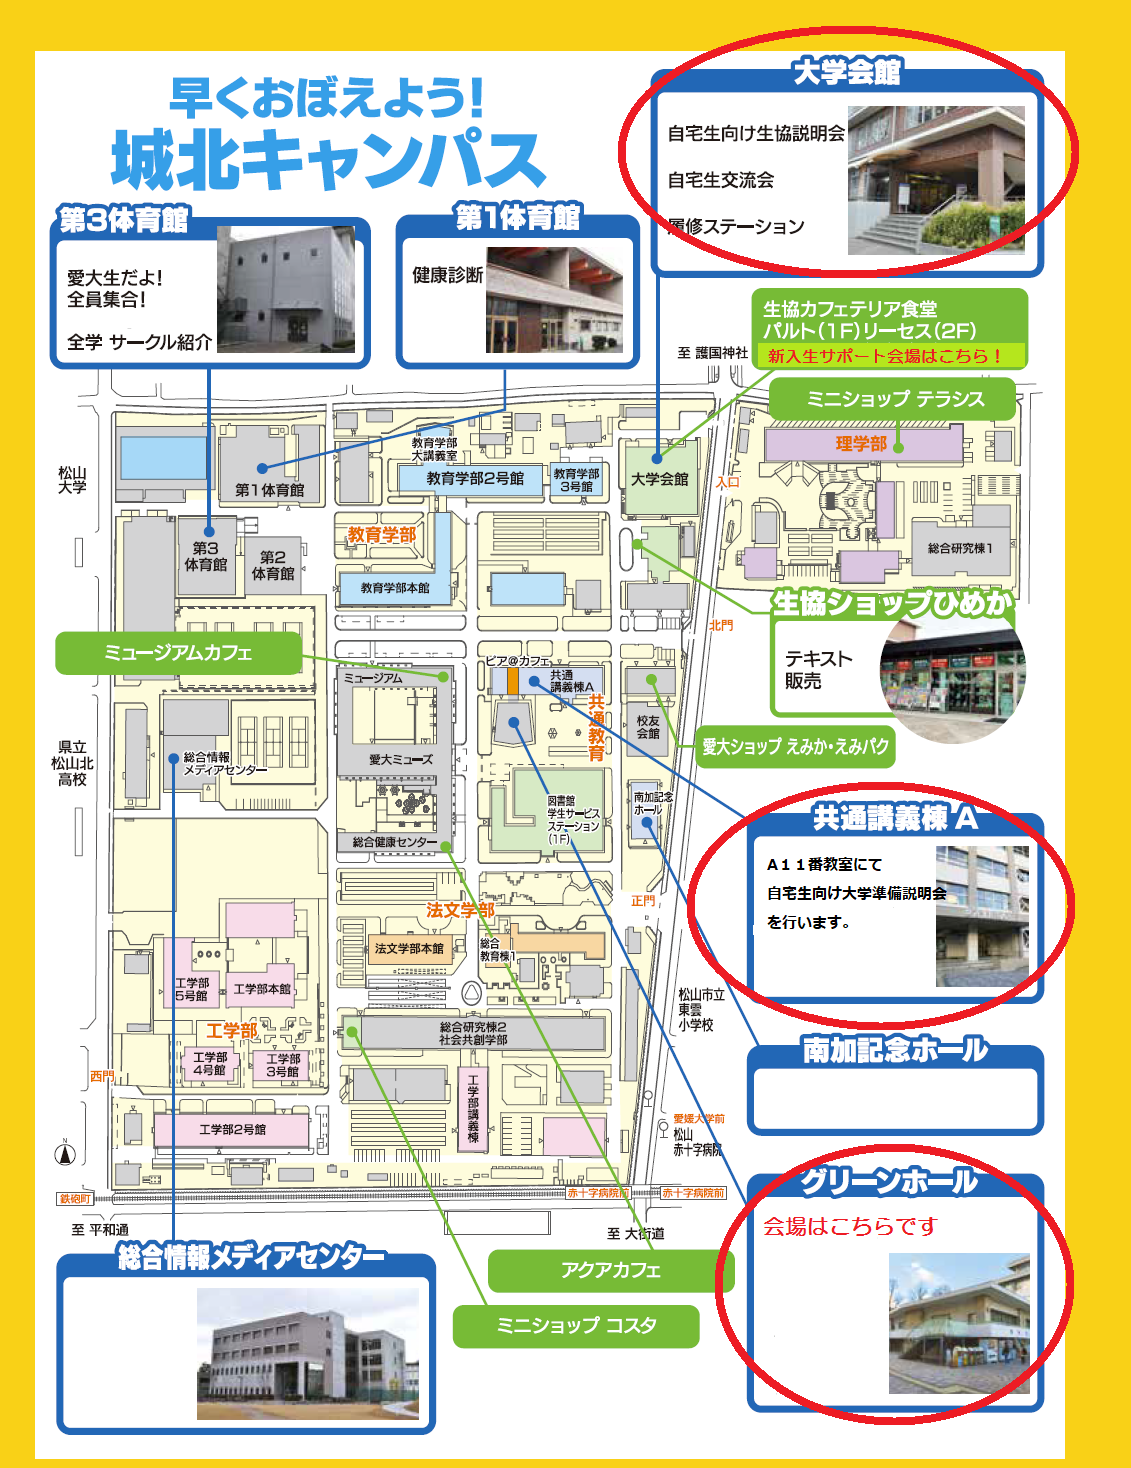 Ehime147_map